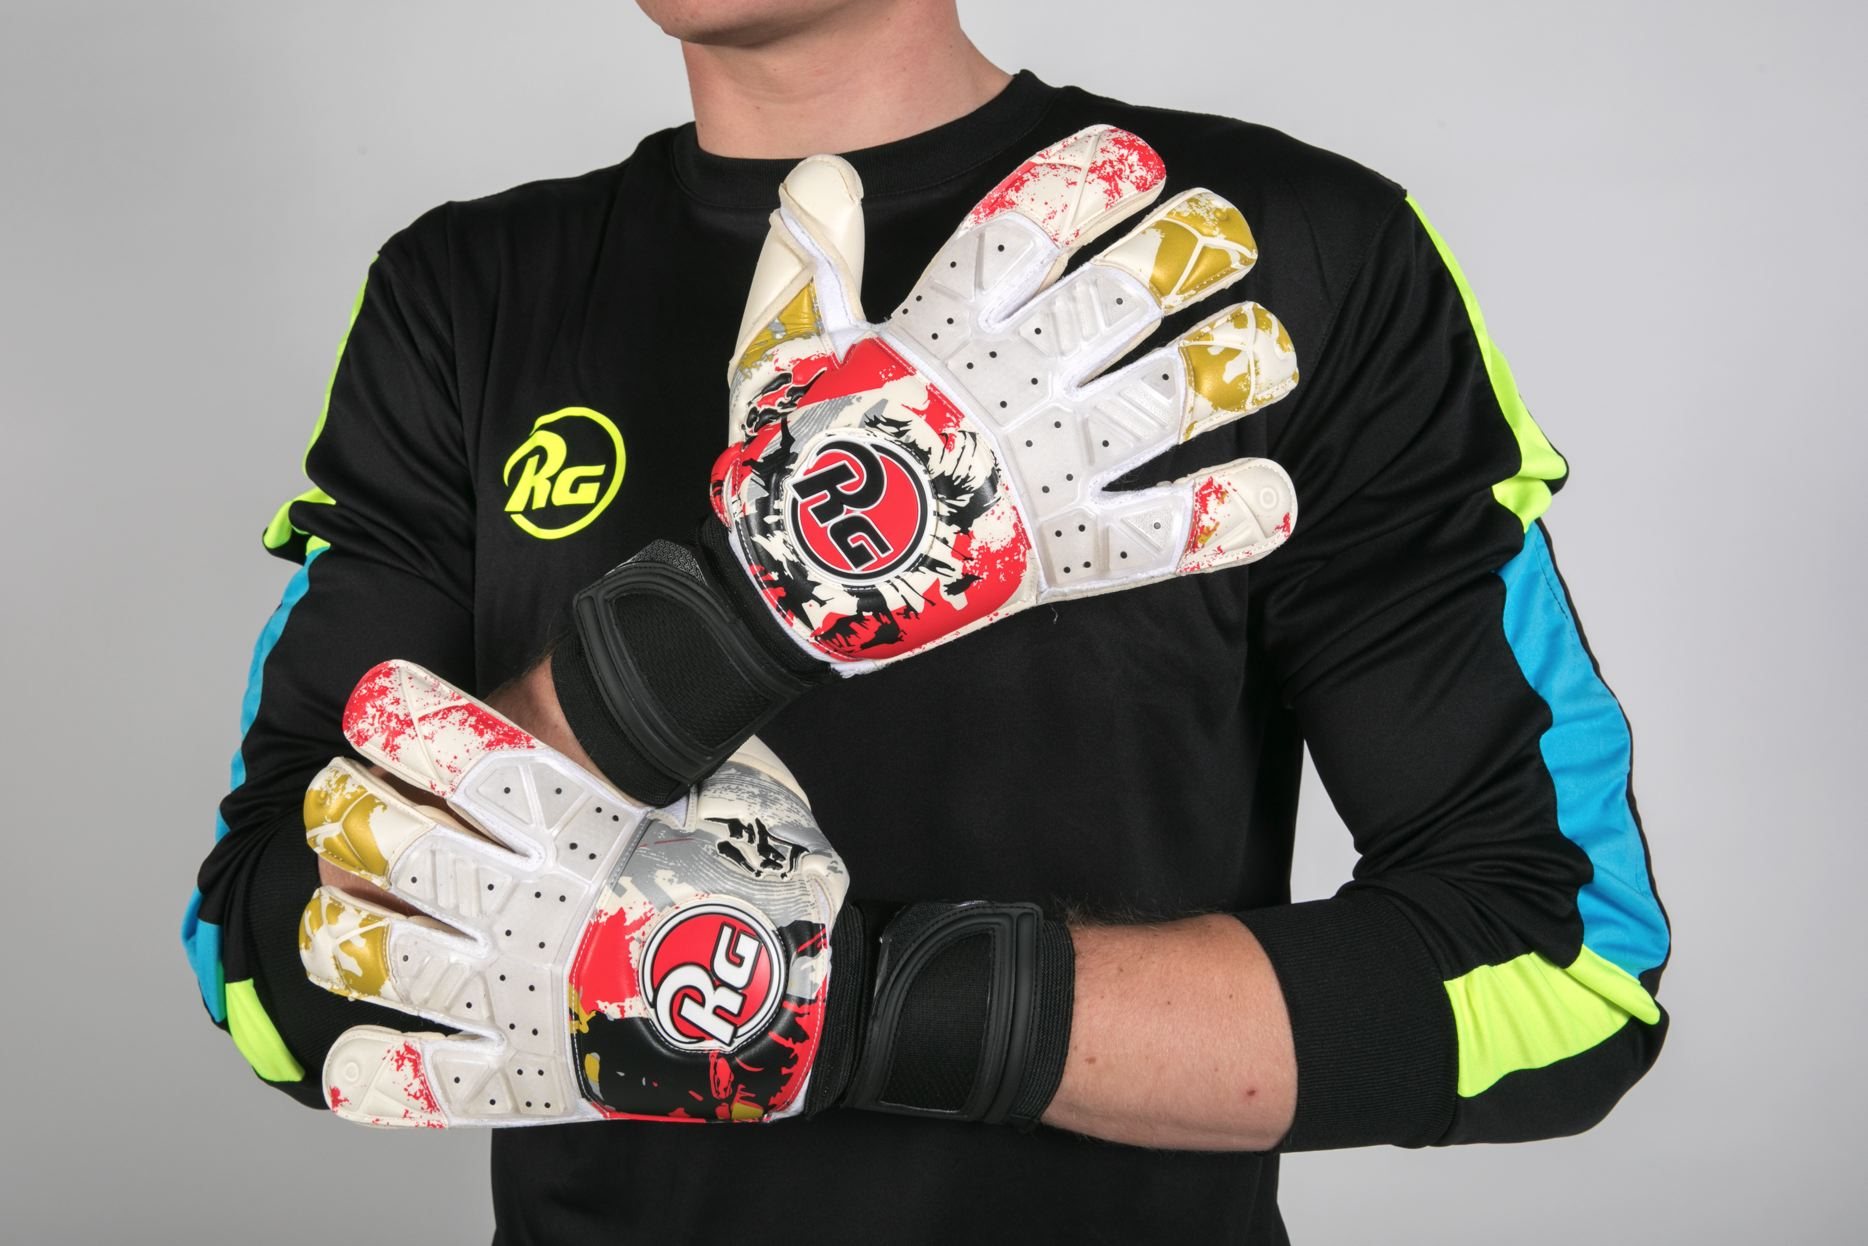 Gants de gardien de but RG SAMURAI 2019